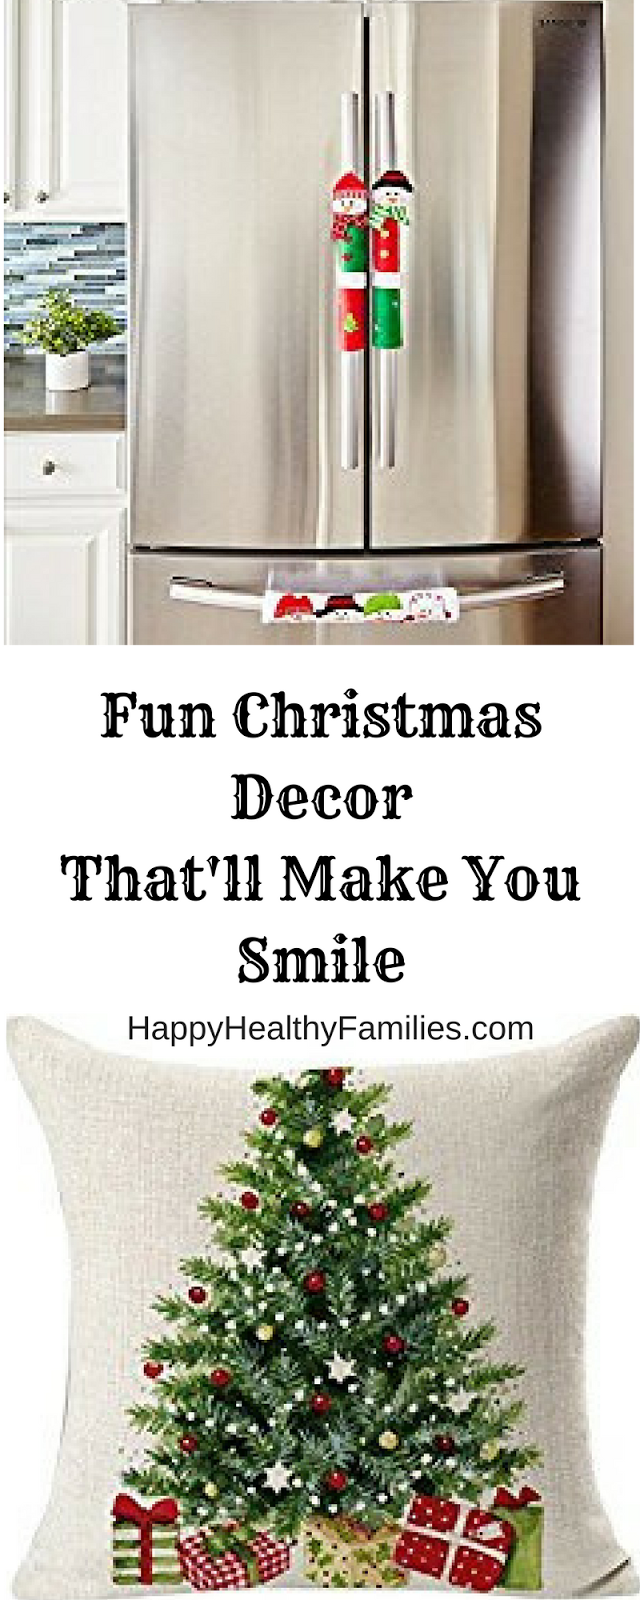 Happy Healthy Families: Fun and Inexpensive Holiday Decor That Will ...